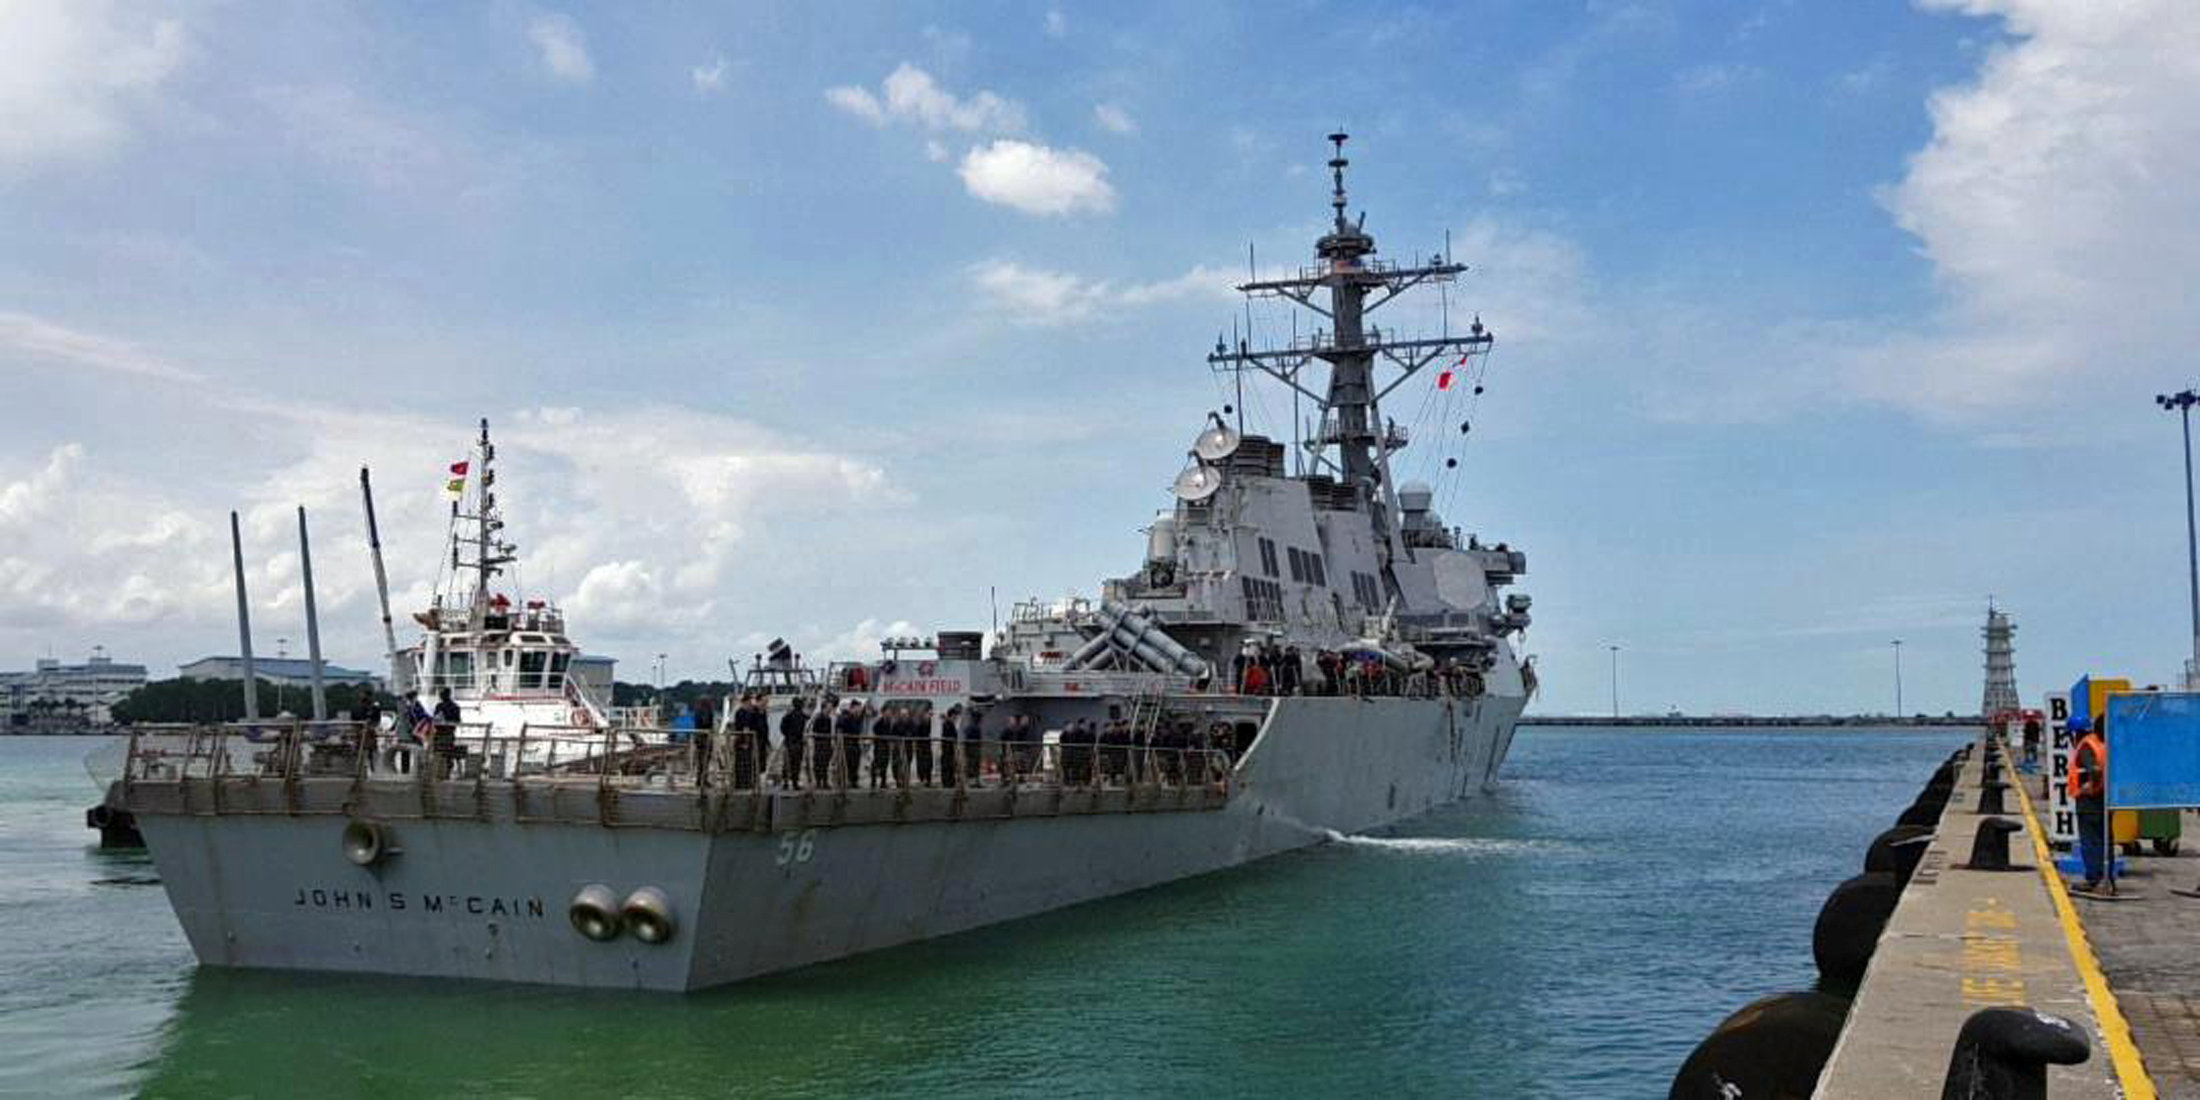 The guided-missile destroyer USS John S. McCain arrives at Changi Naval Base in Singapore on August 21, 2017. (U.S. Navy/Handout via REUTERS)